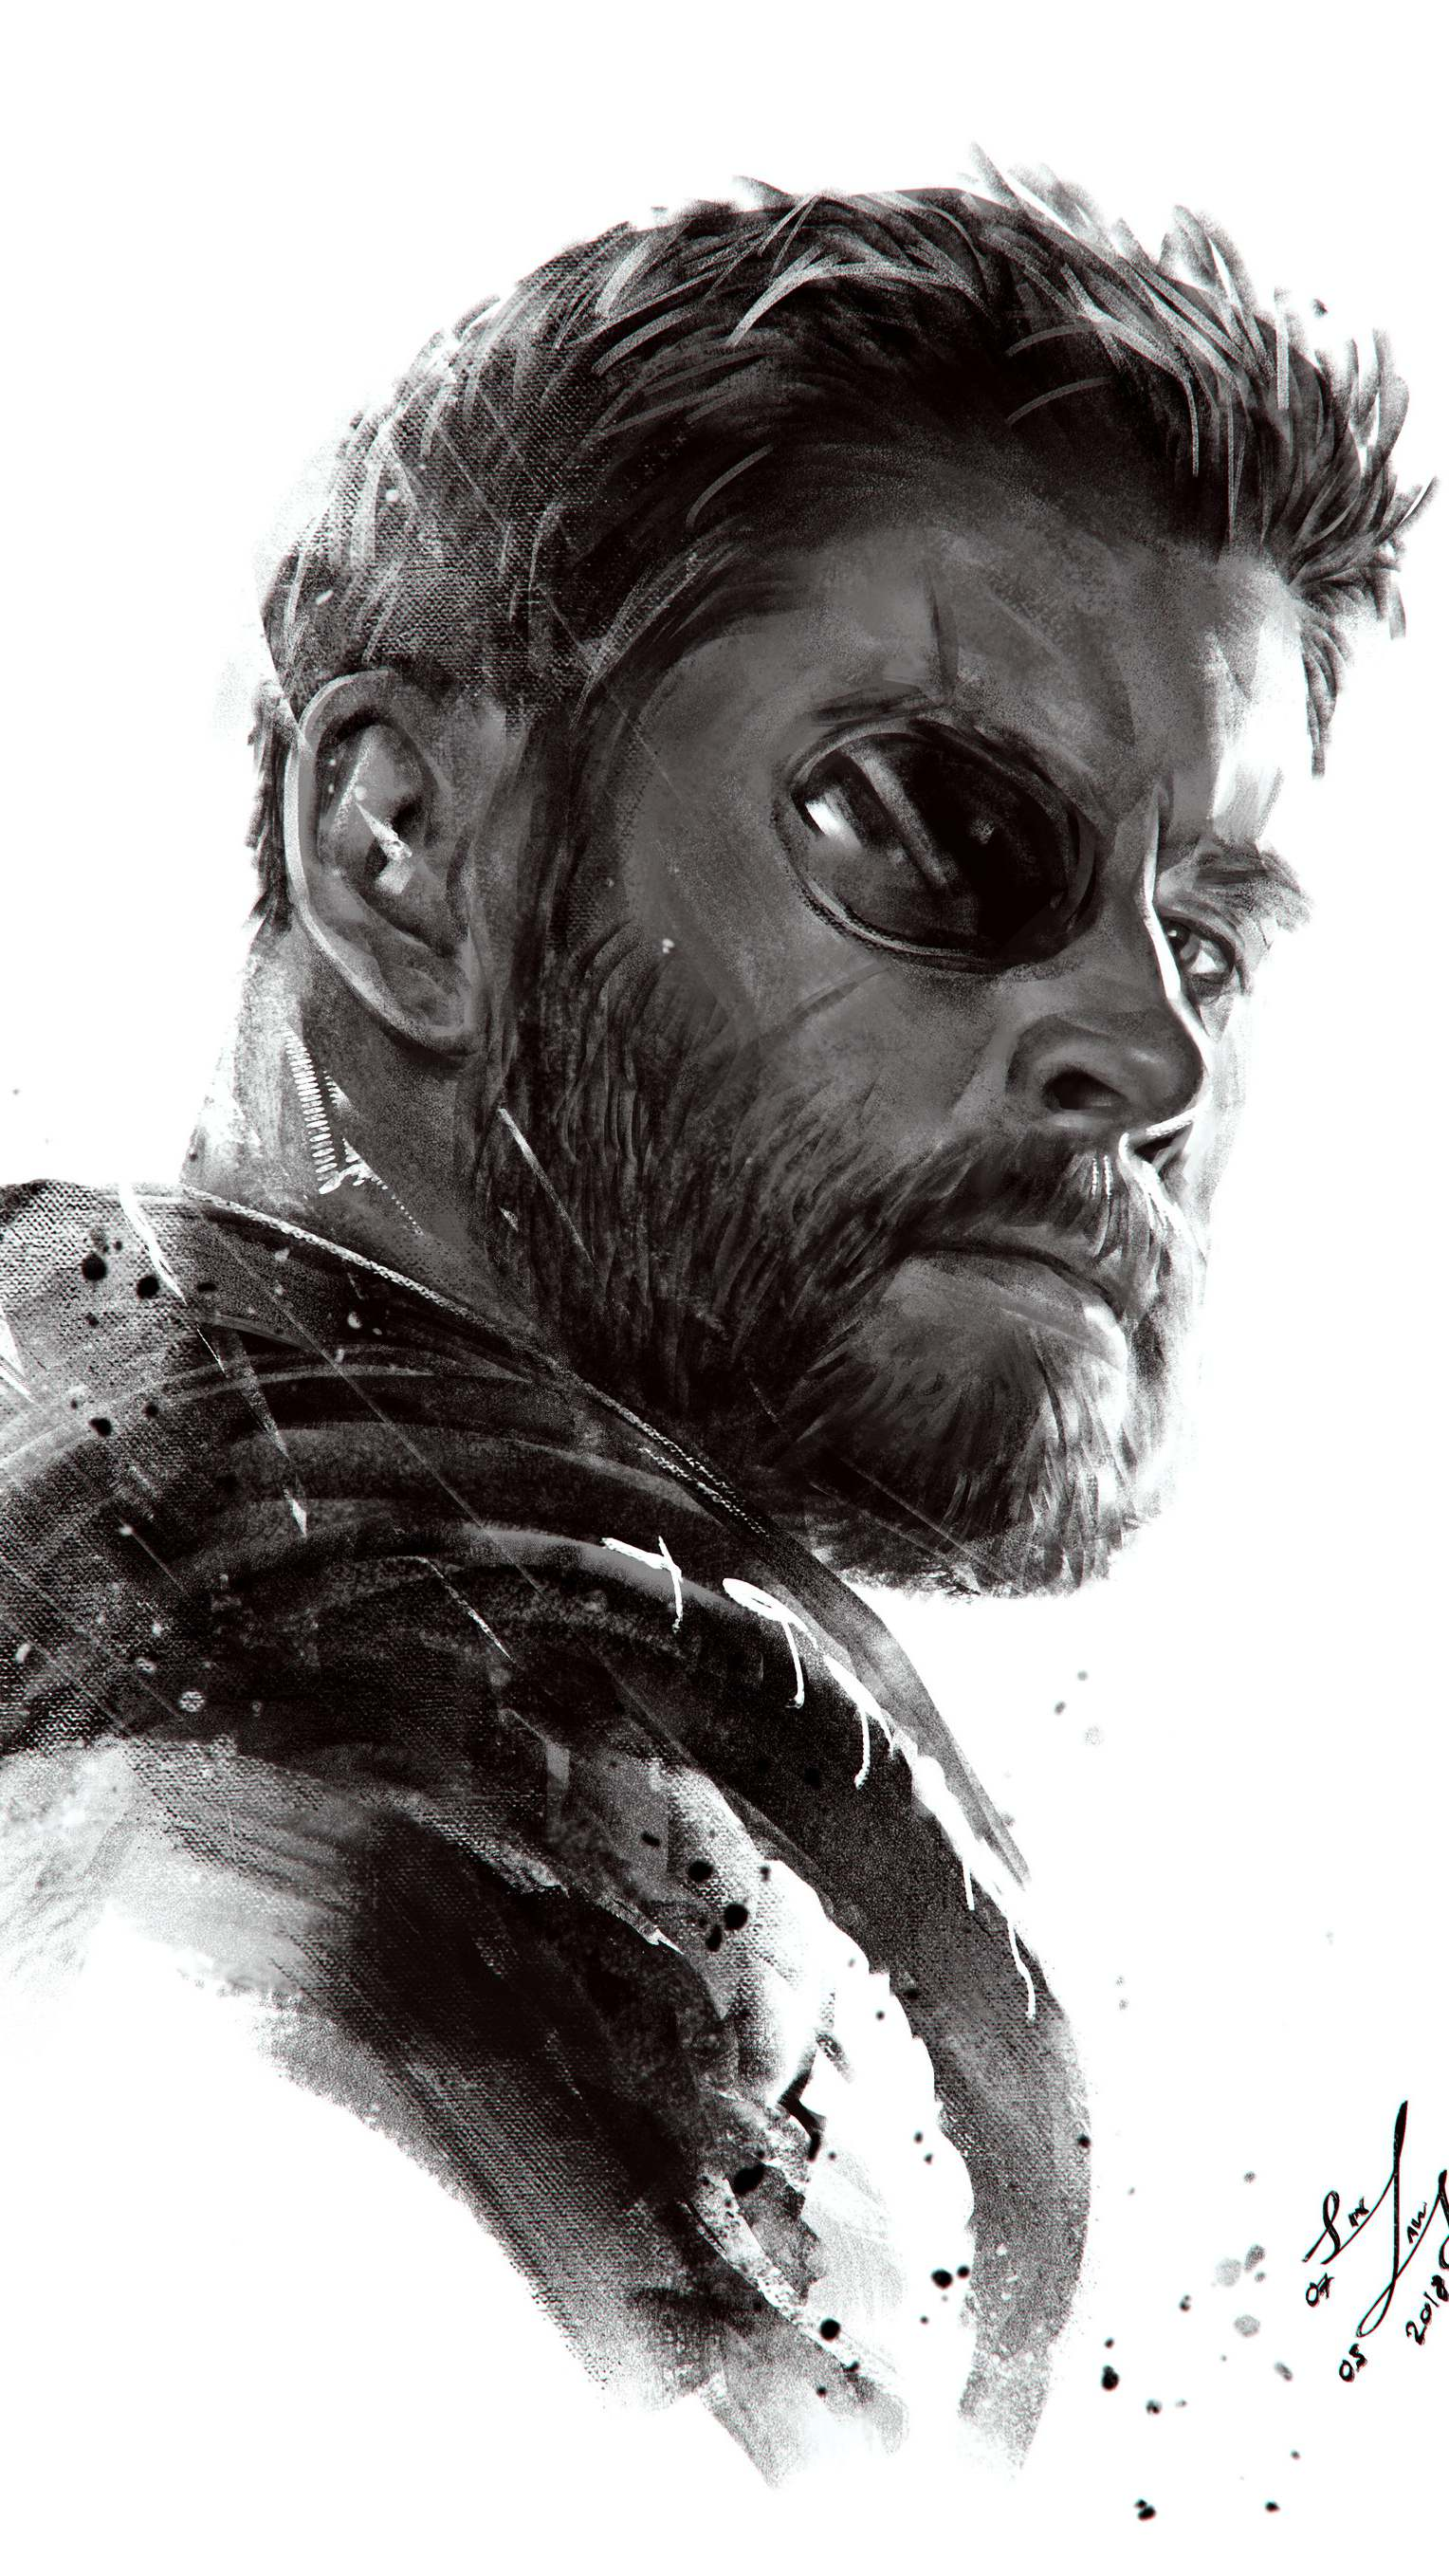 Thor Monochrome Art iPhone Wallpaper - iPhone Wallpapers ...